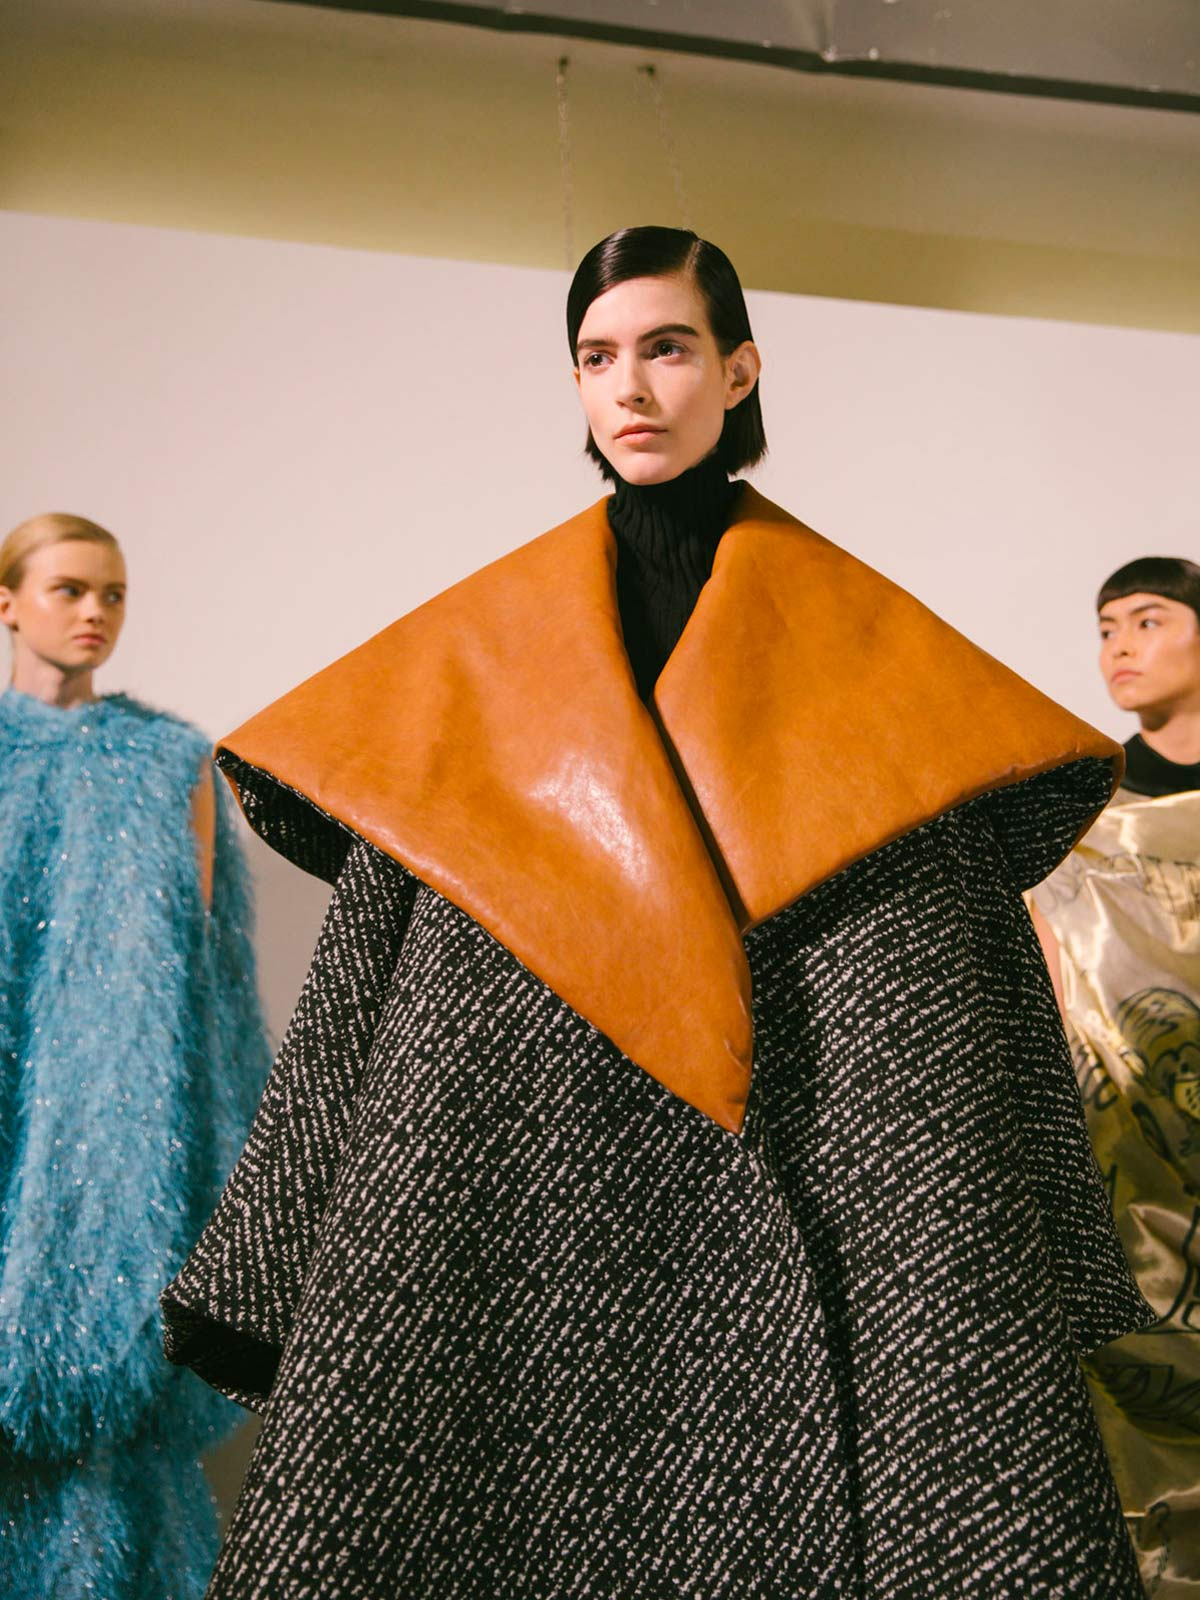 J.W. Anderson's enormous coats are the last word on power dressing